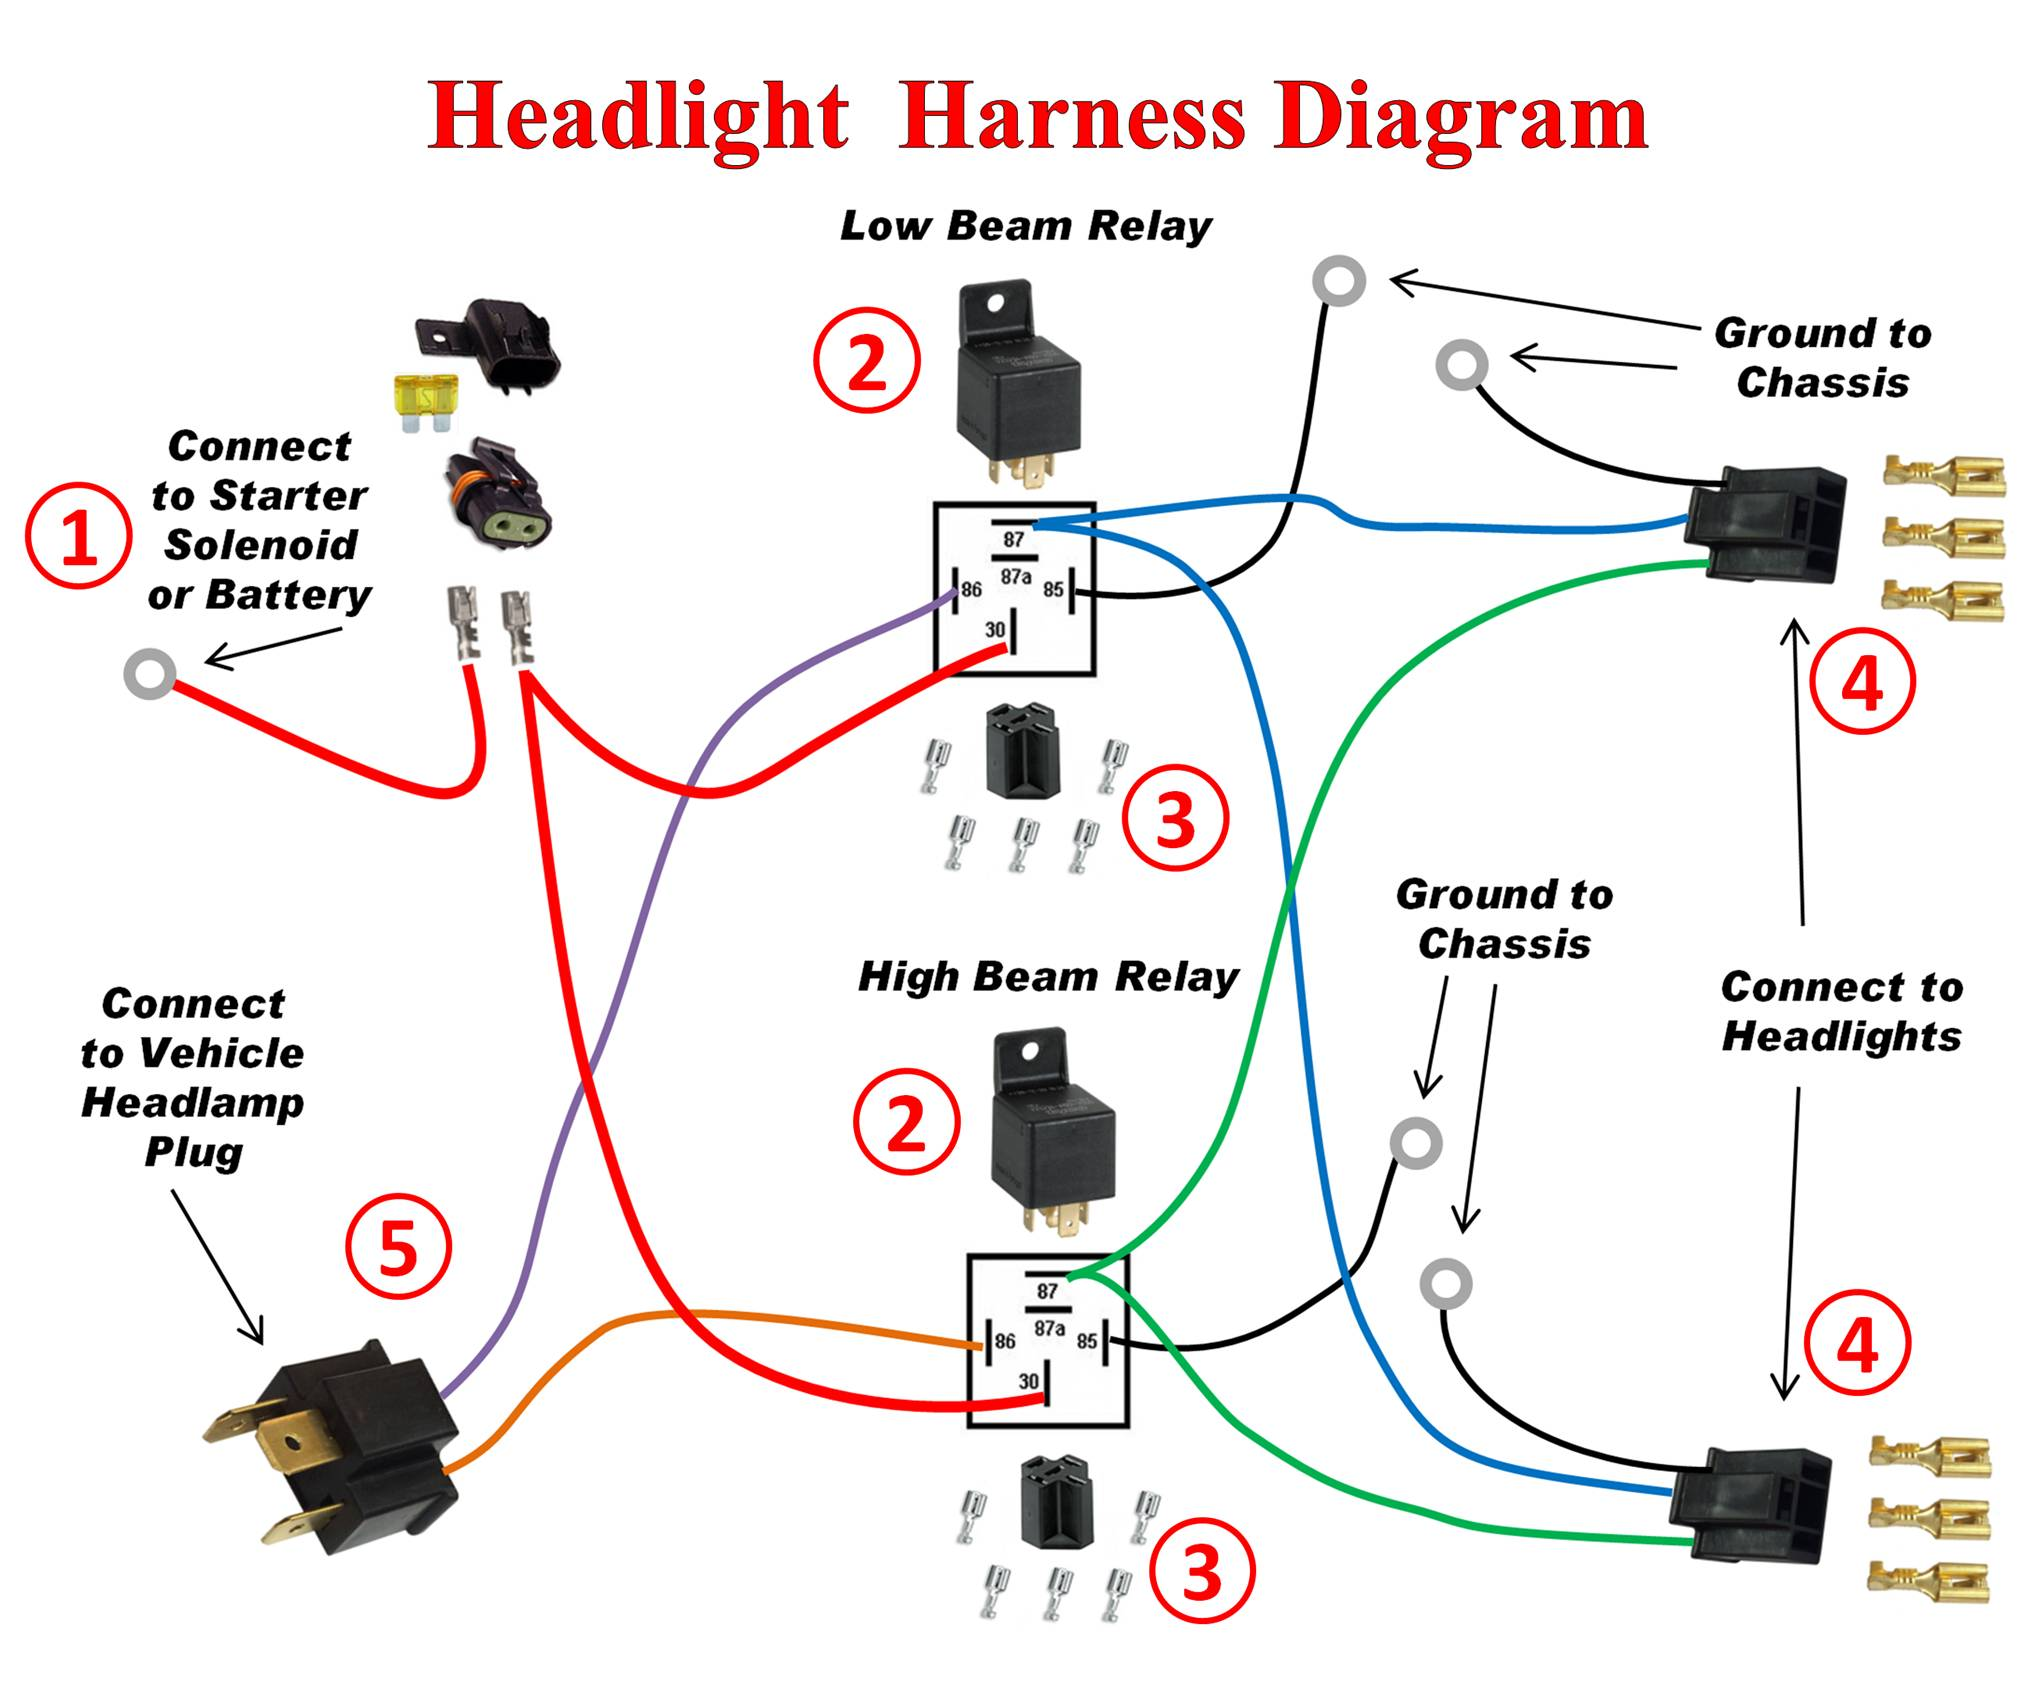 Headlight Harness Wiring ProjectHiPo Parts Garage